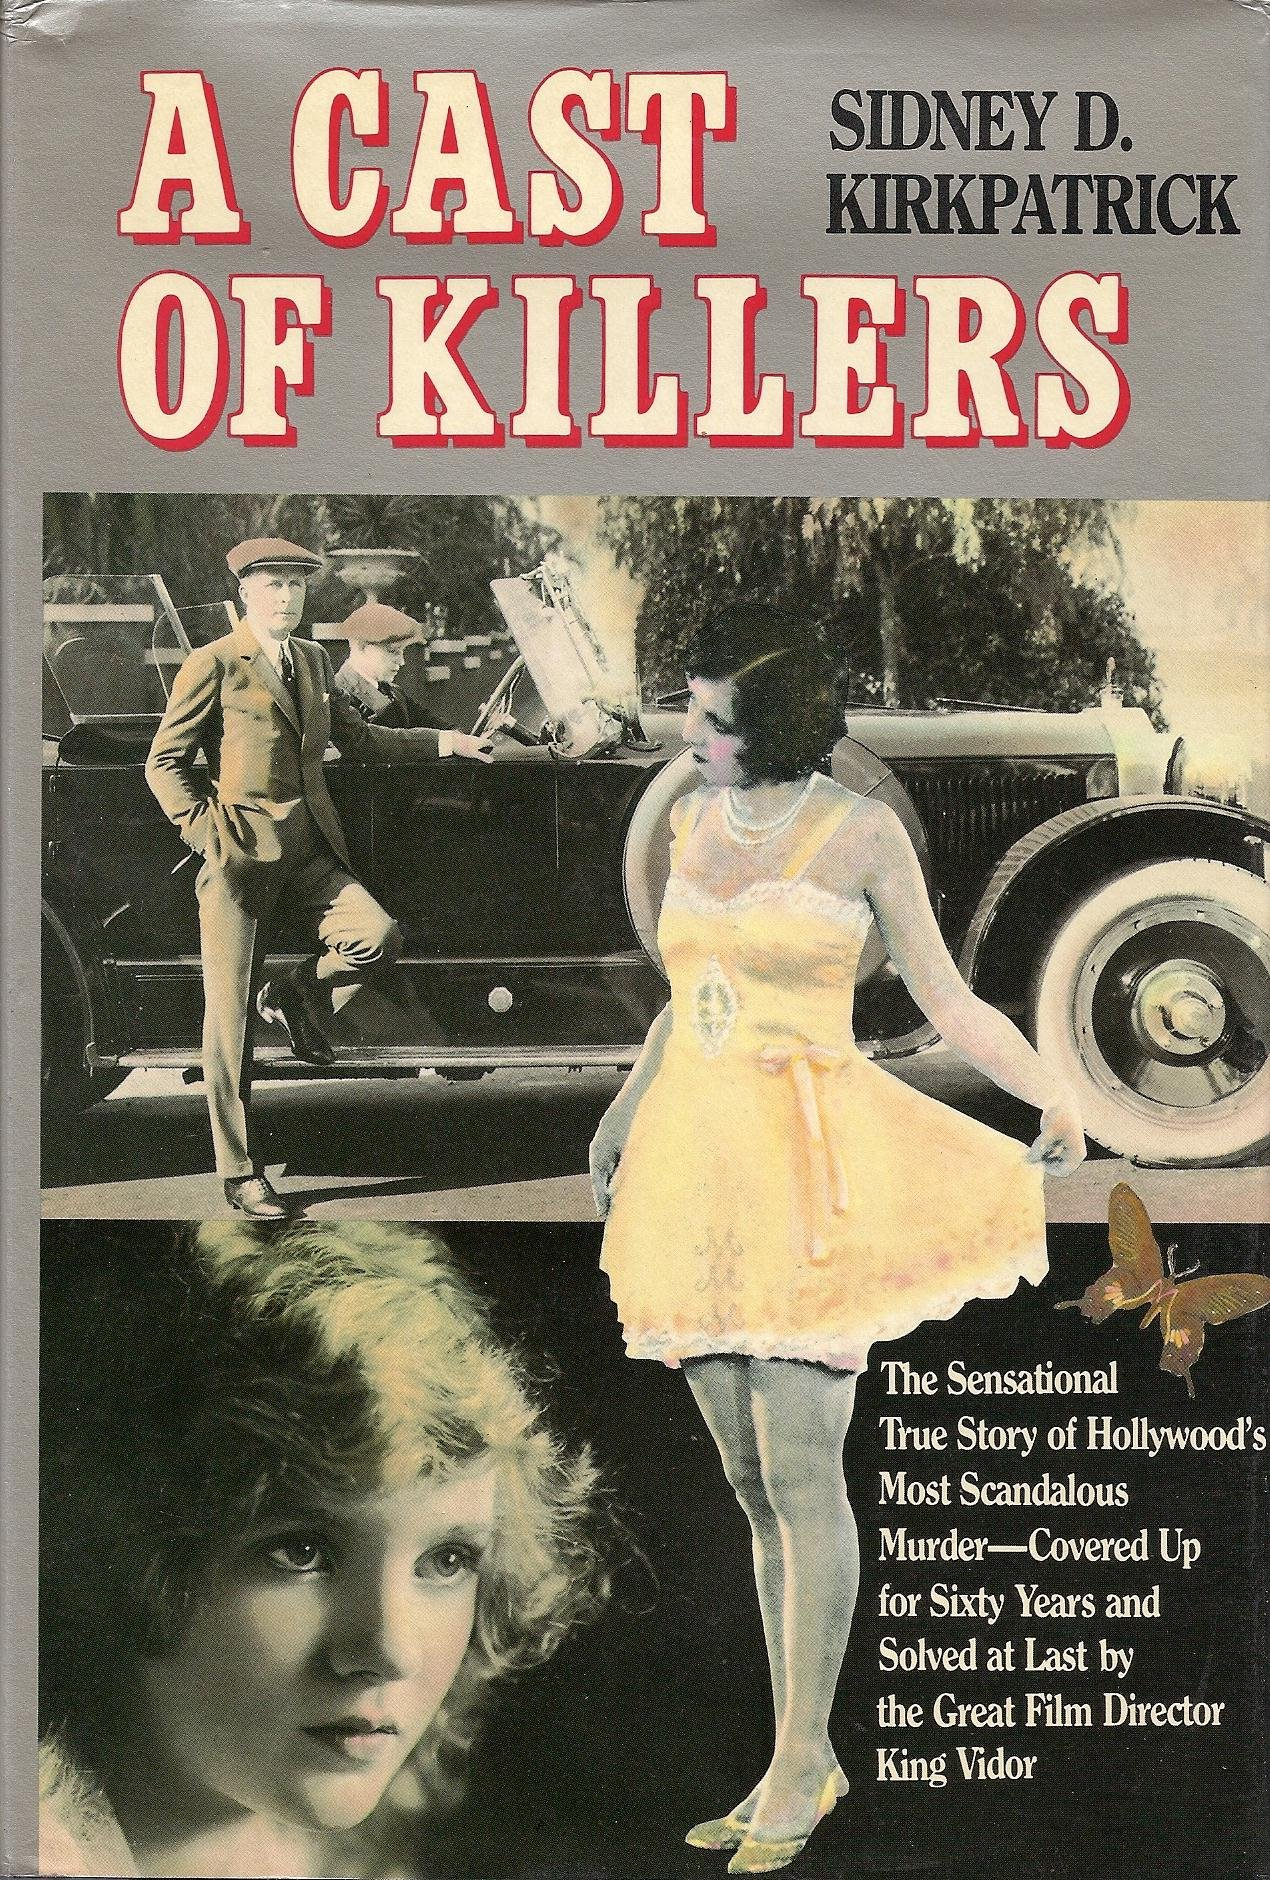 Image result for cast of killers